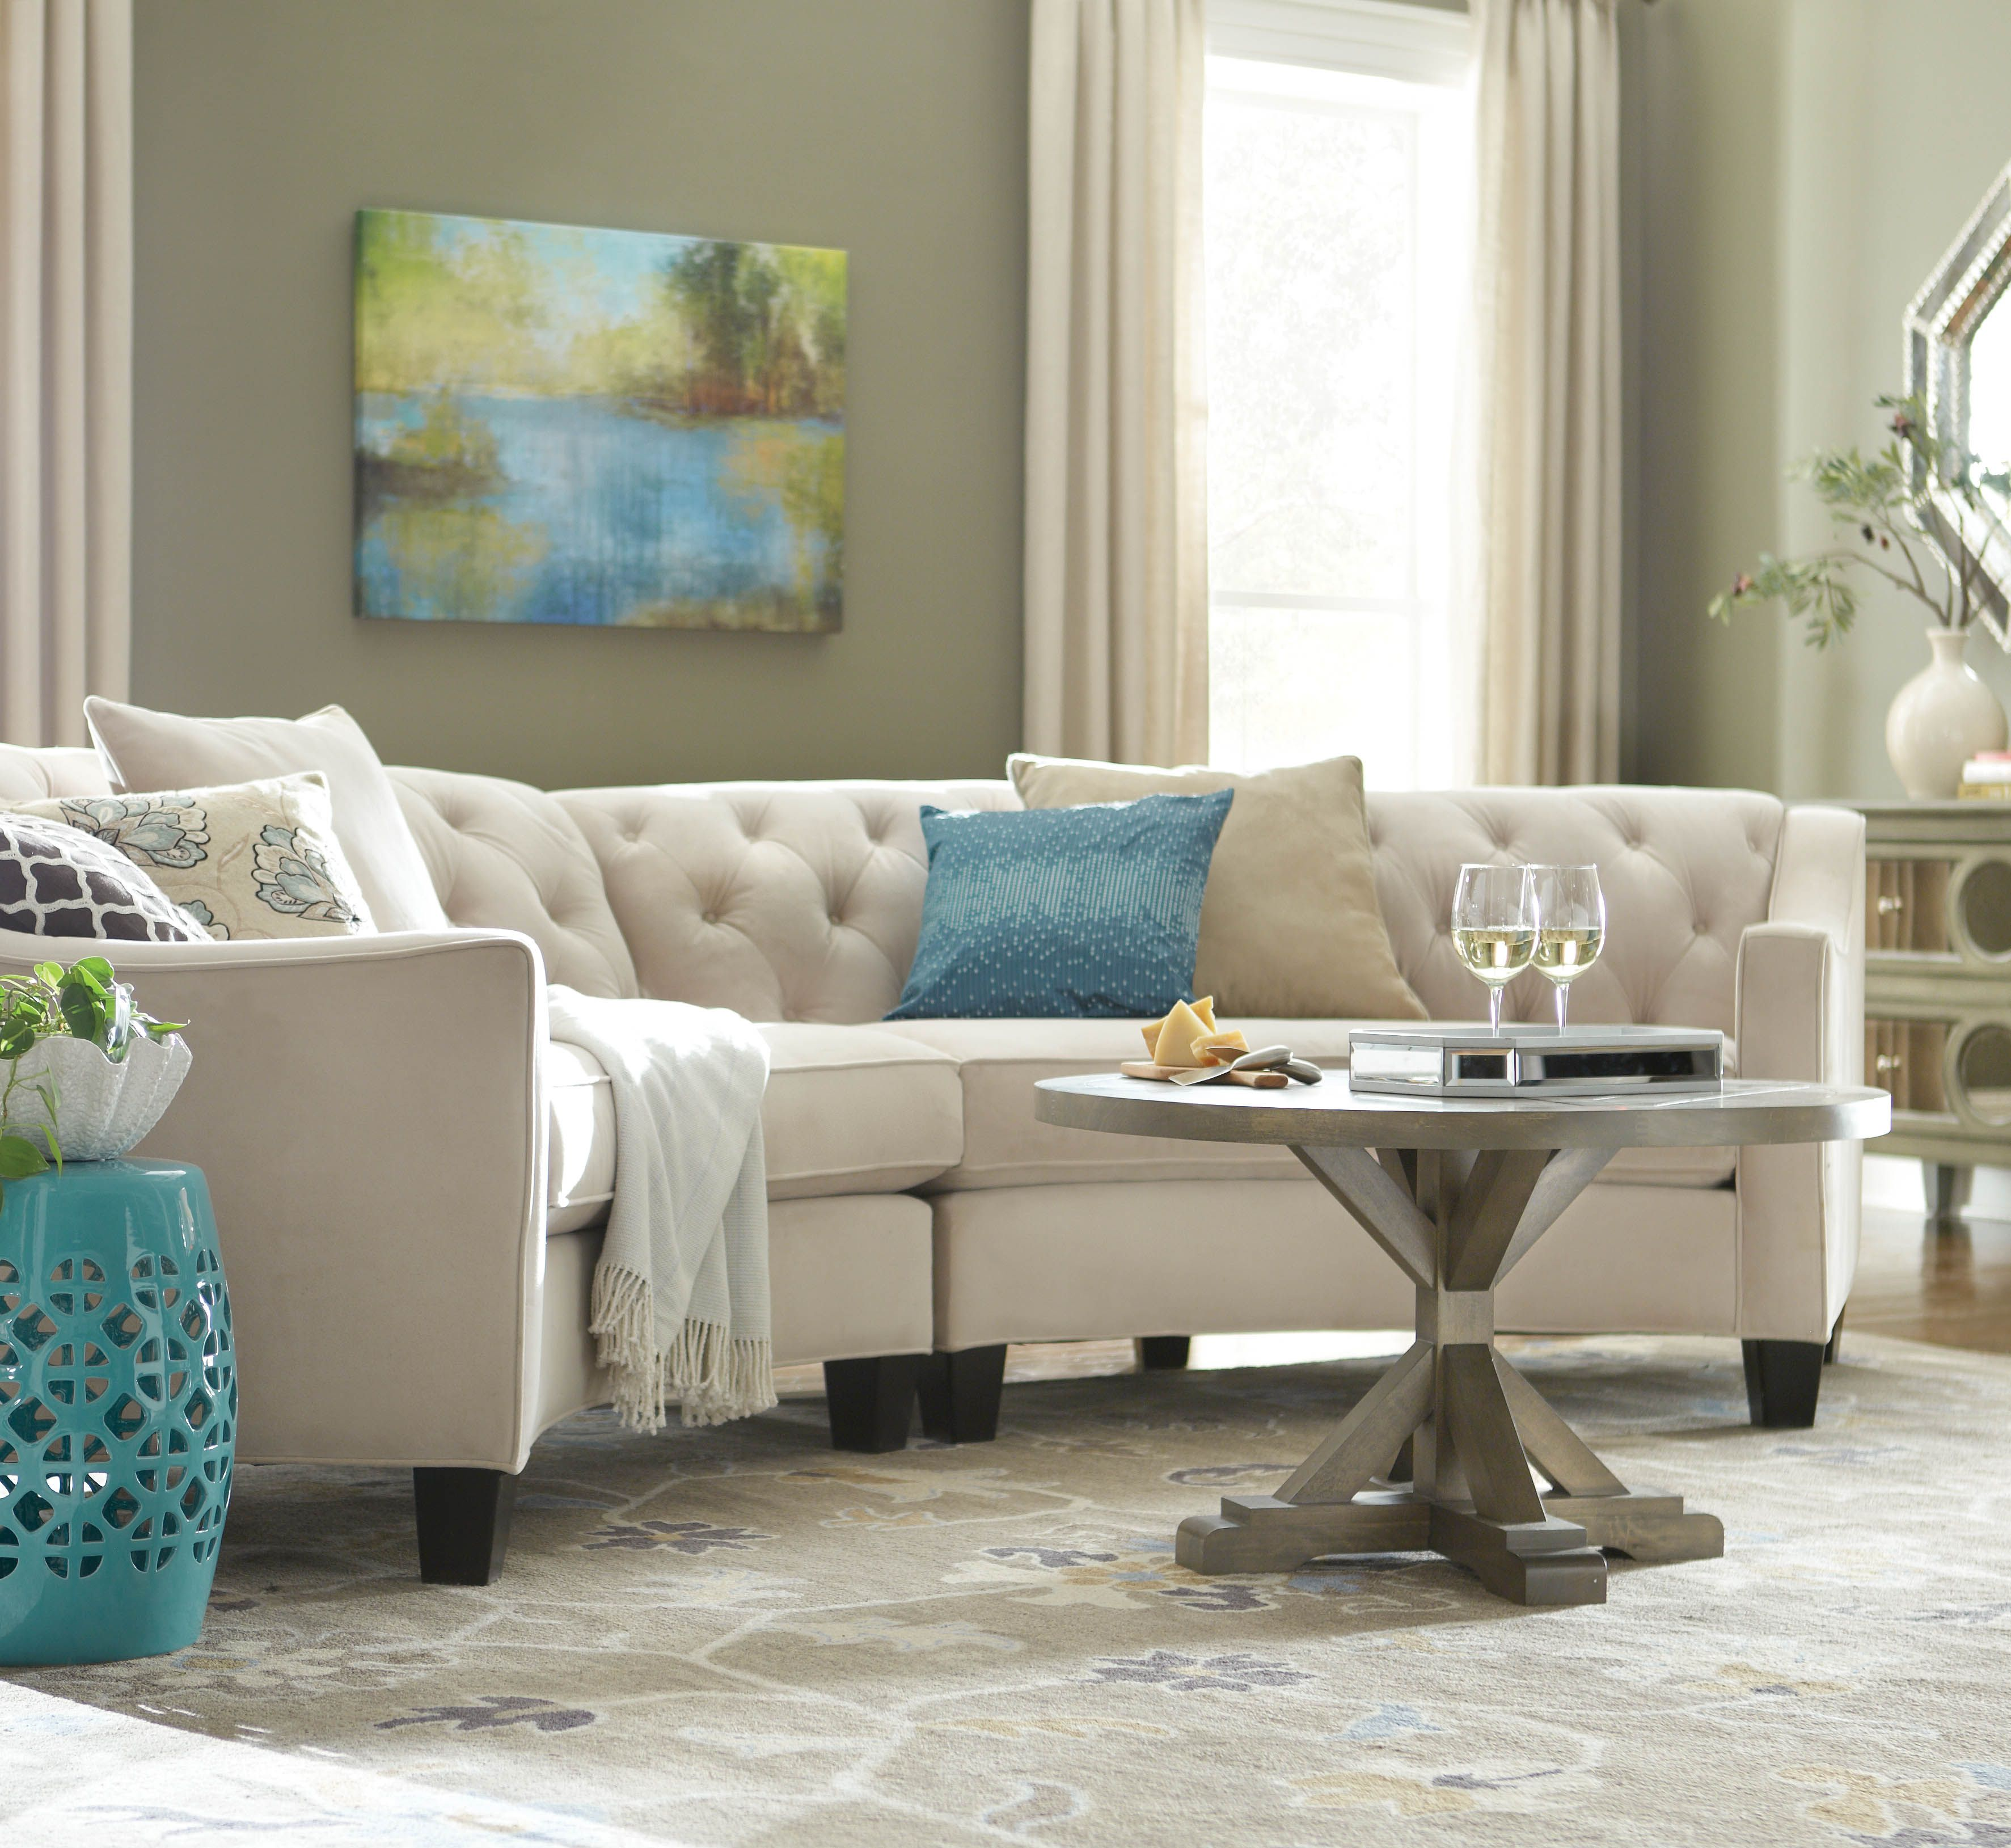 This Curved Sectional Is Superb. HomeDecorators.com